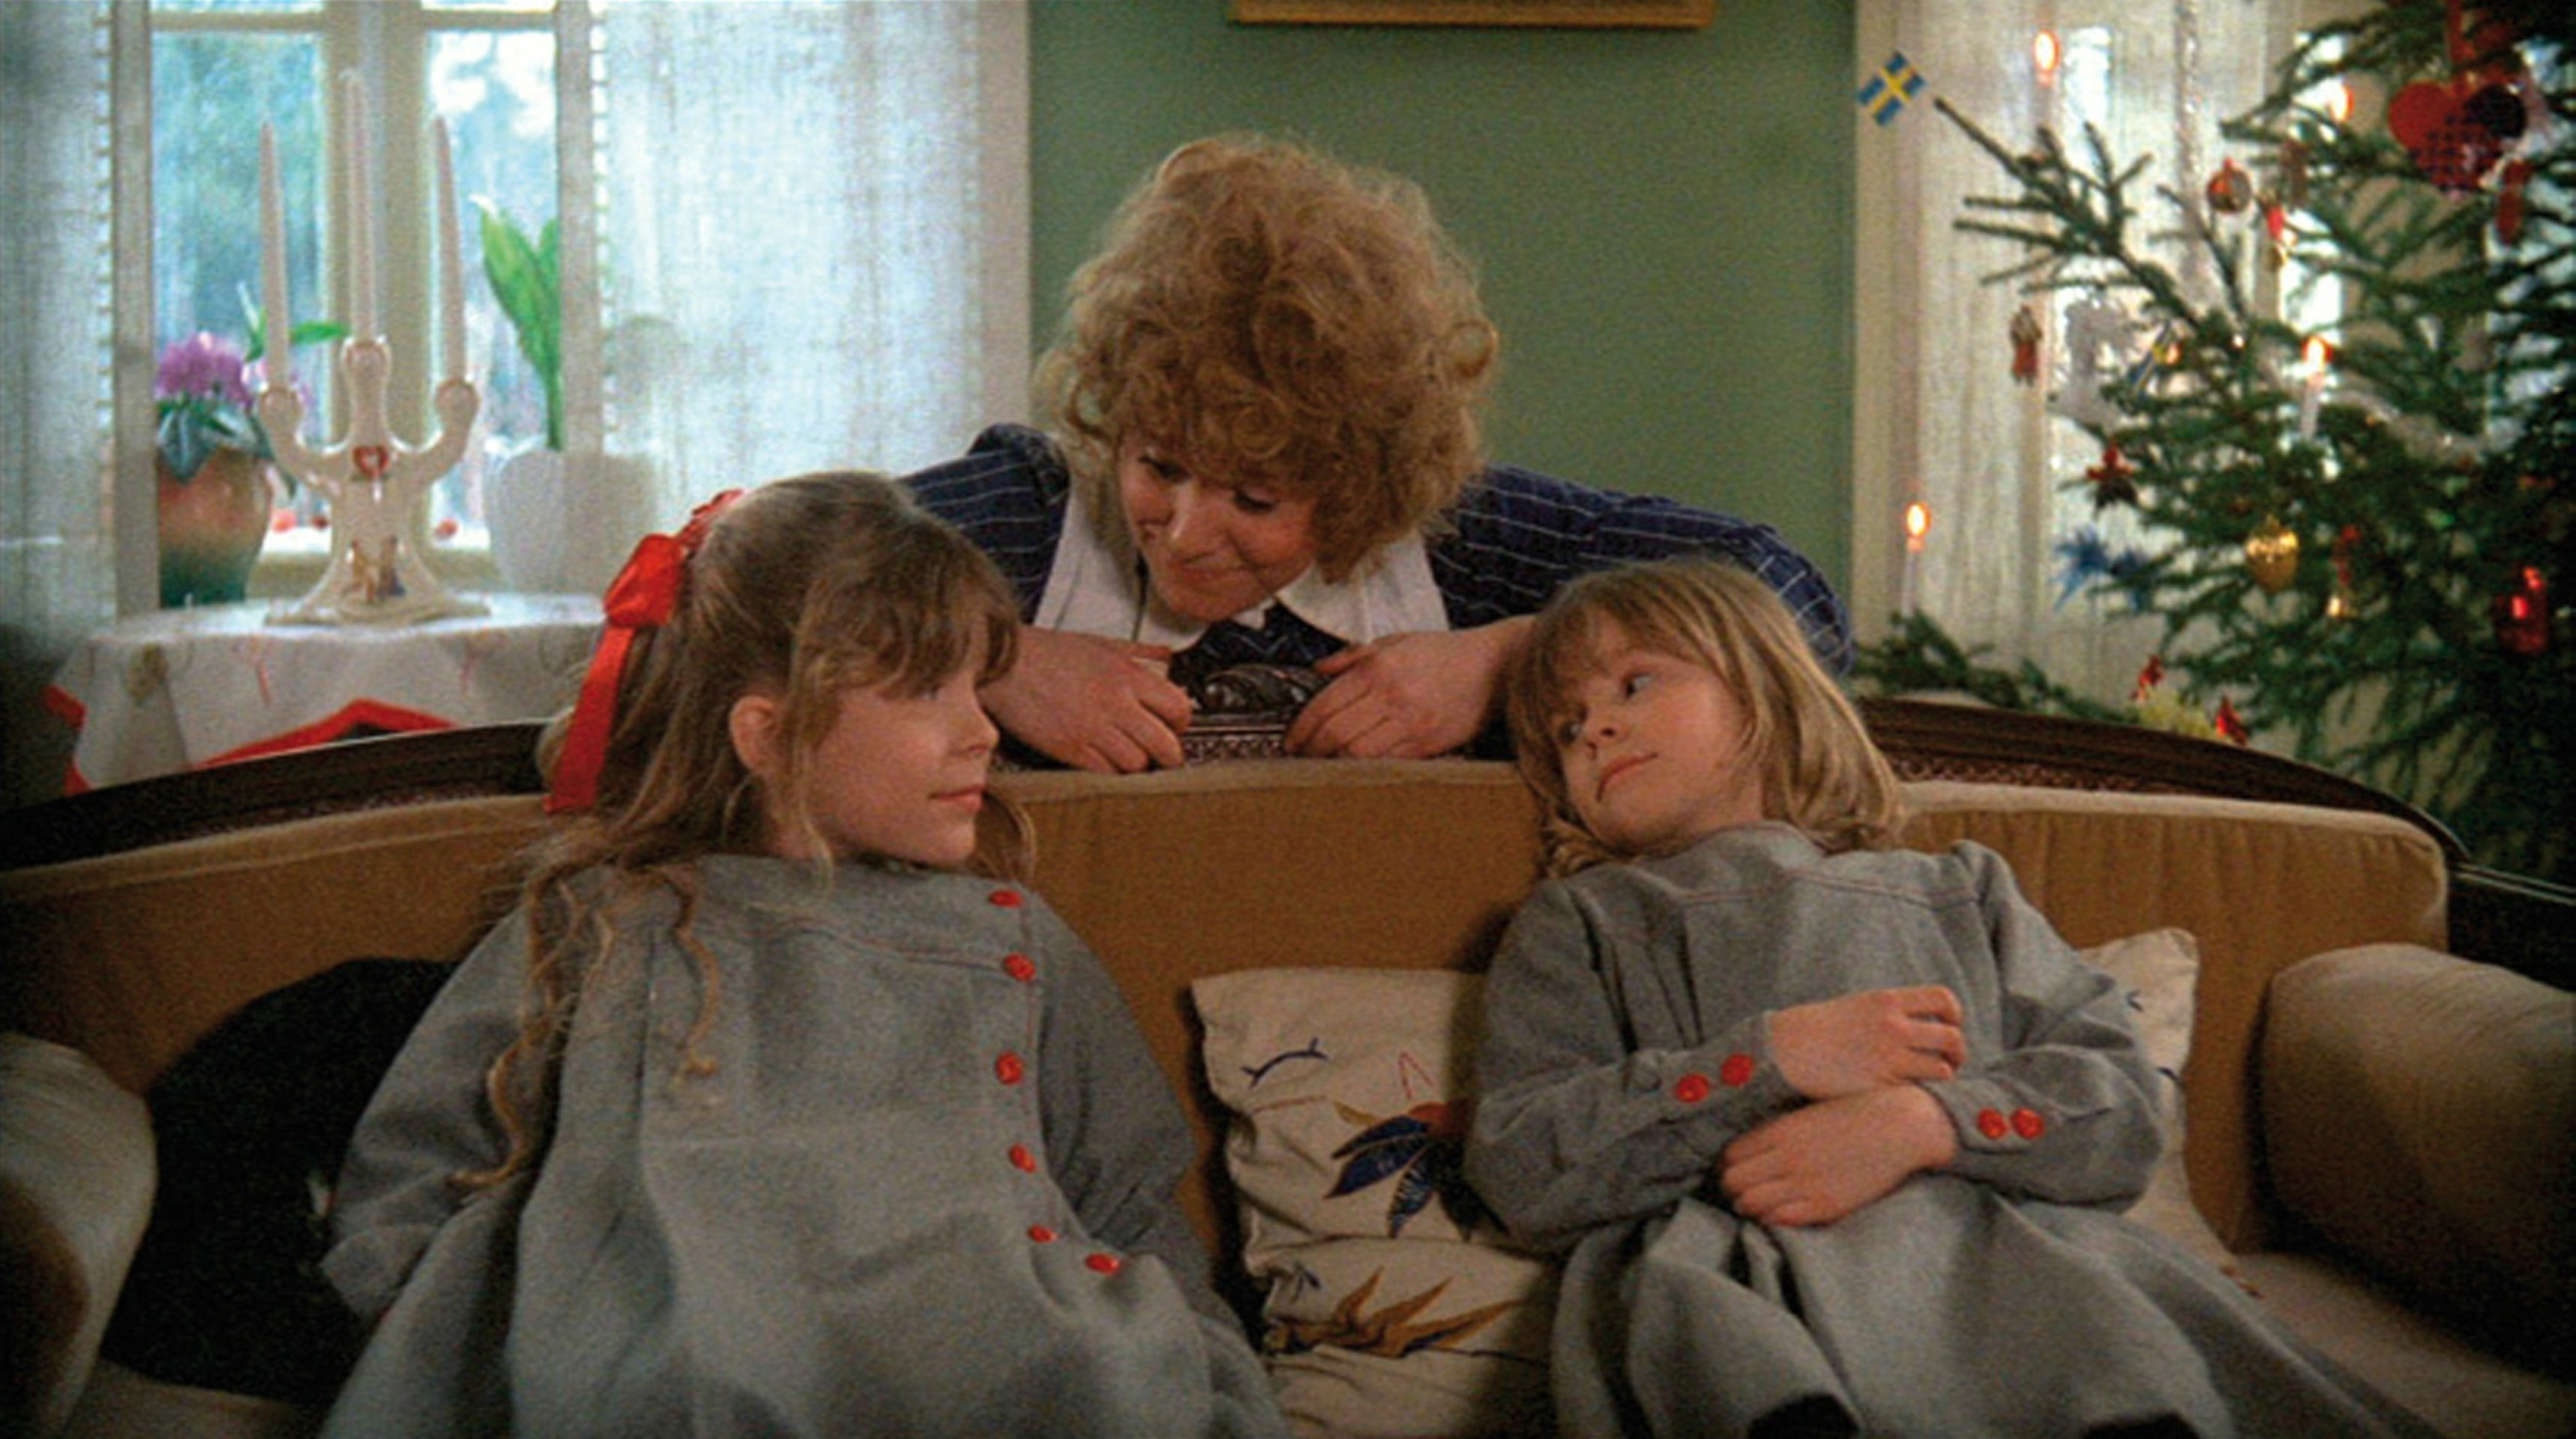 weihnachten mit astrid lindgren volume 2 film 1987. Black Bedroom Furniture Sets. Home Design Ideas